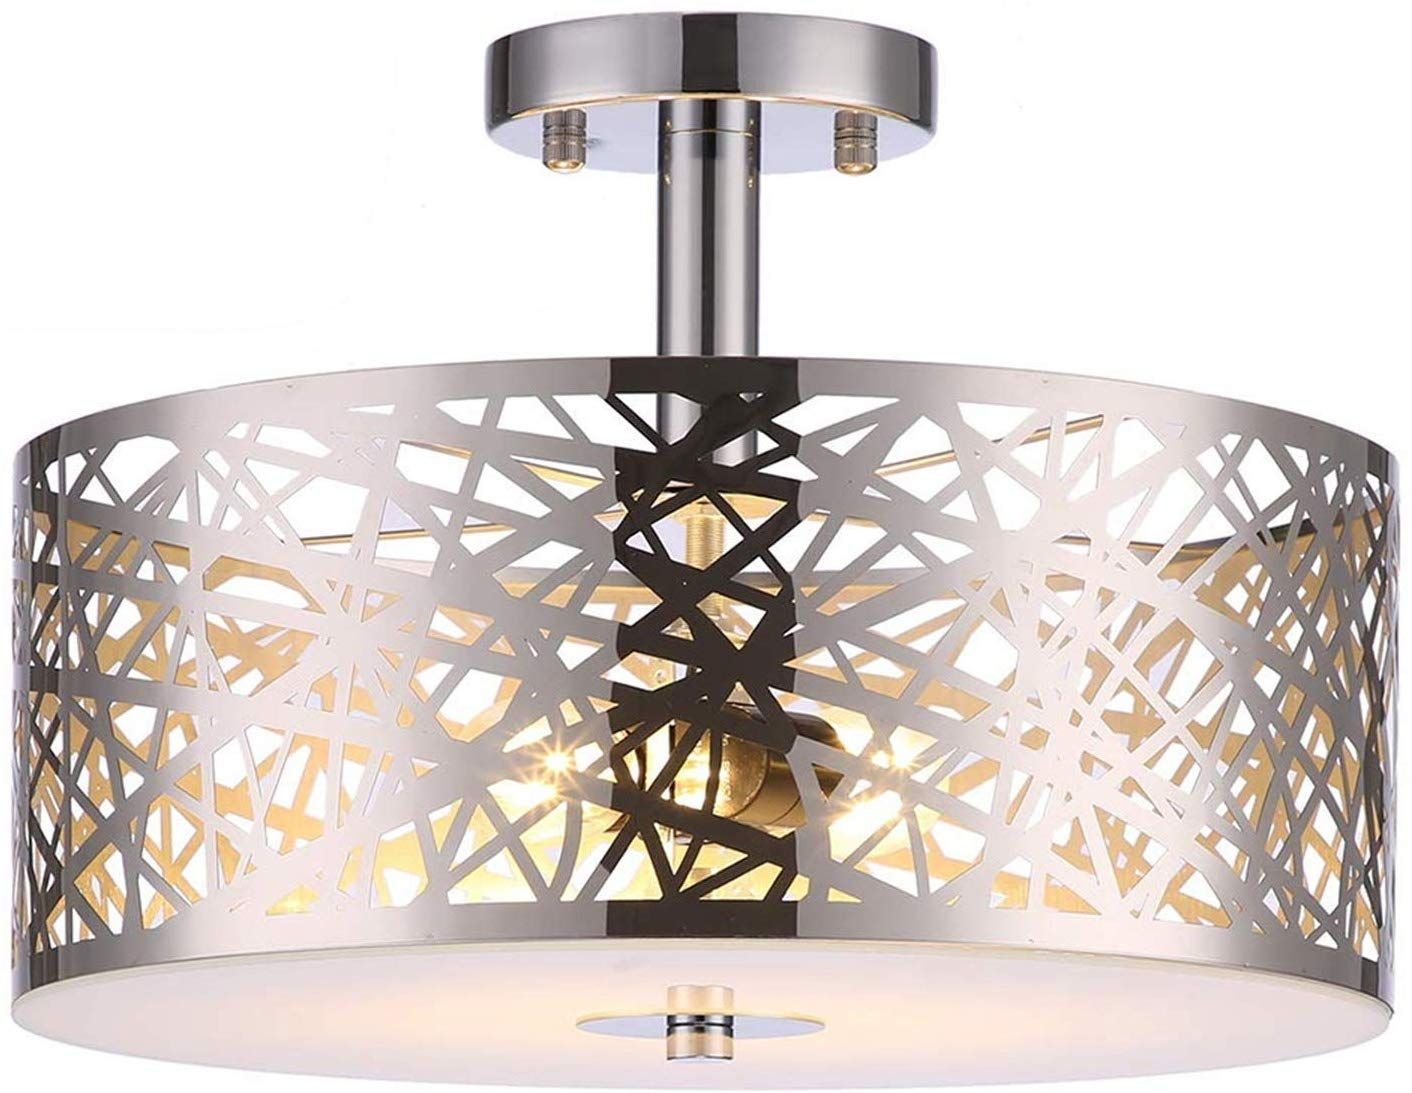 Loclgpm Classic 2 Light Crystal Chrome Finish Semi Flush Mount Ceiling Light You Can Find Mo In 2020 Flush Mount Ceiling Lights Drum Chandelier Chandelier Fixtures